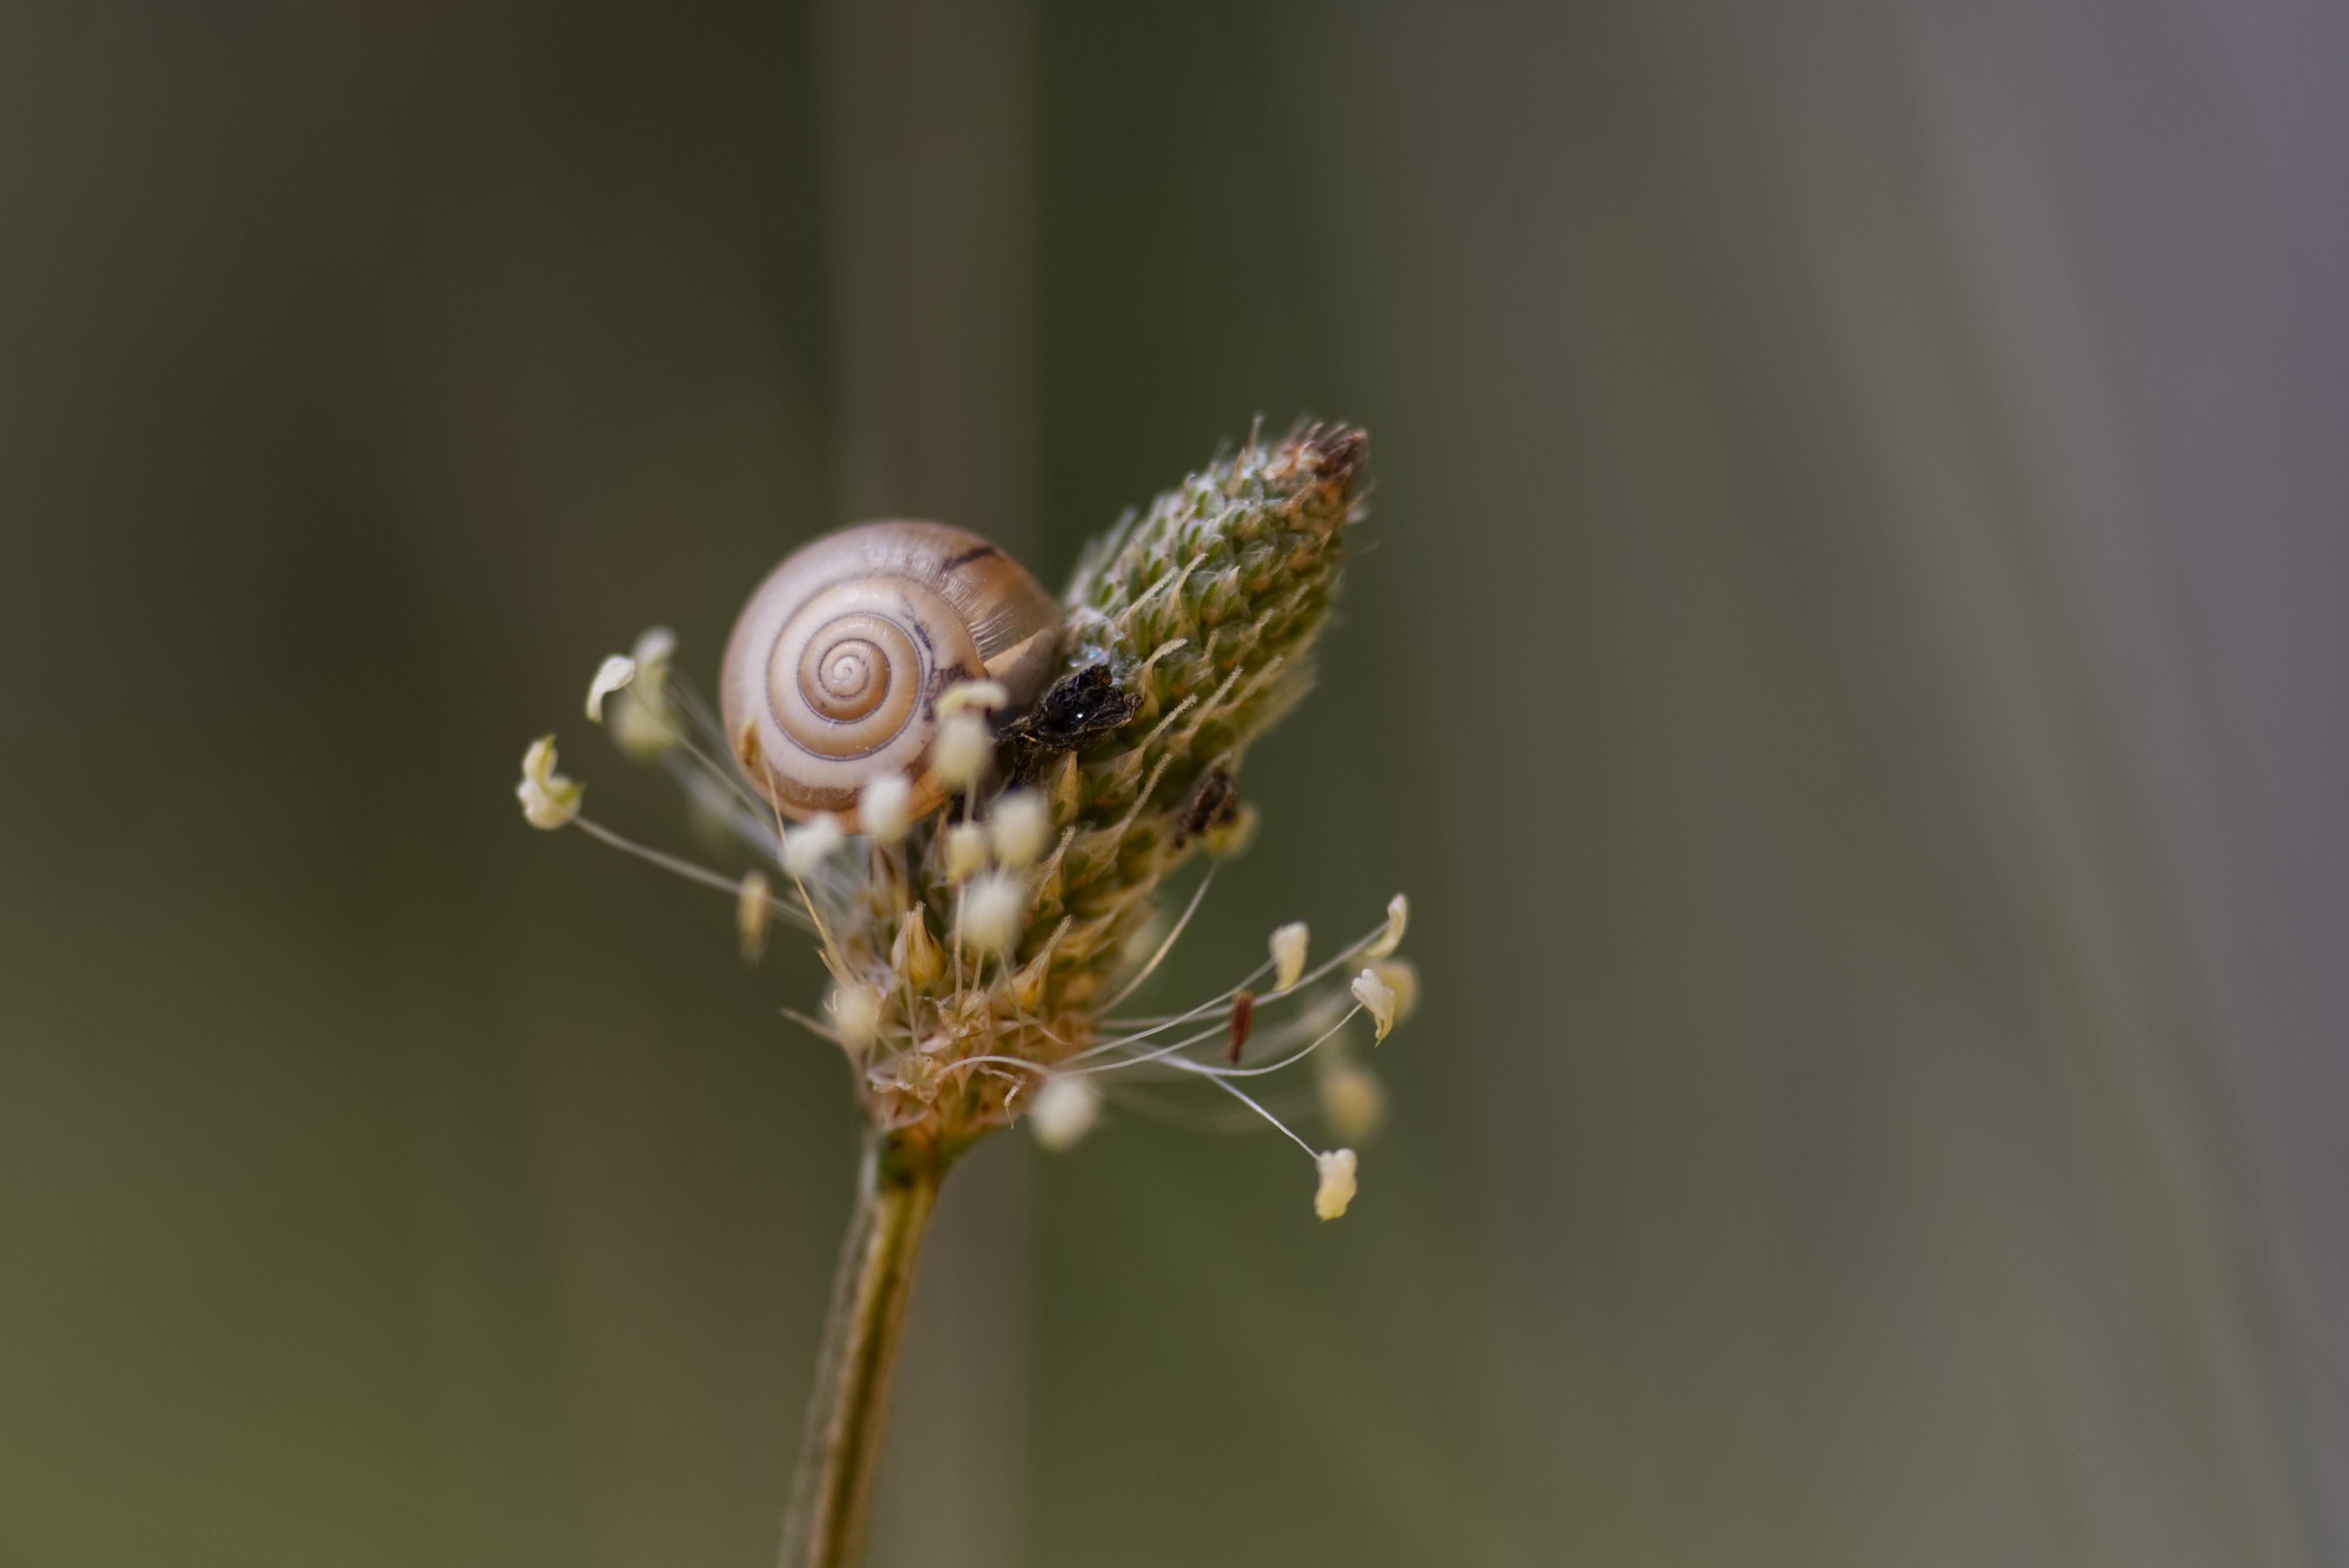 snail climbing up a plant on their way to creative success